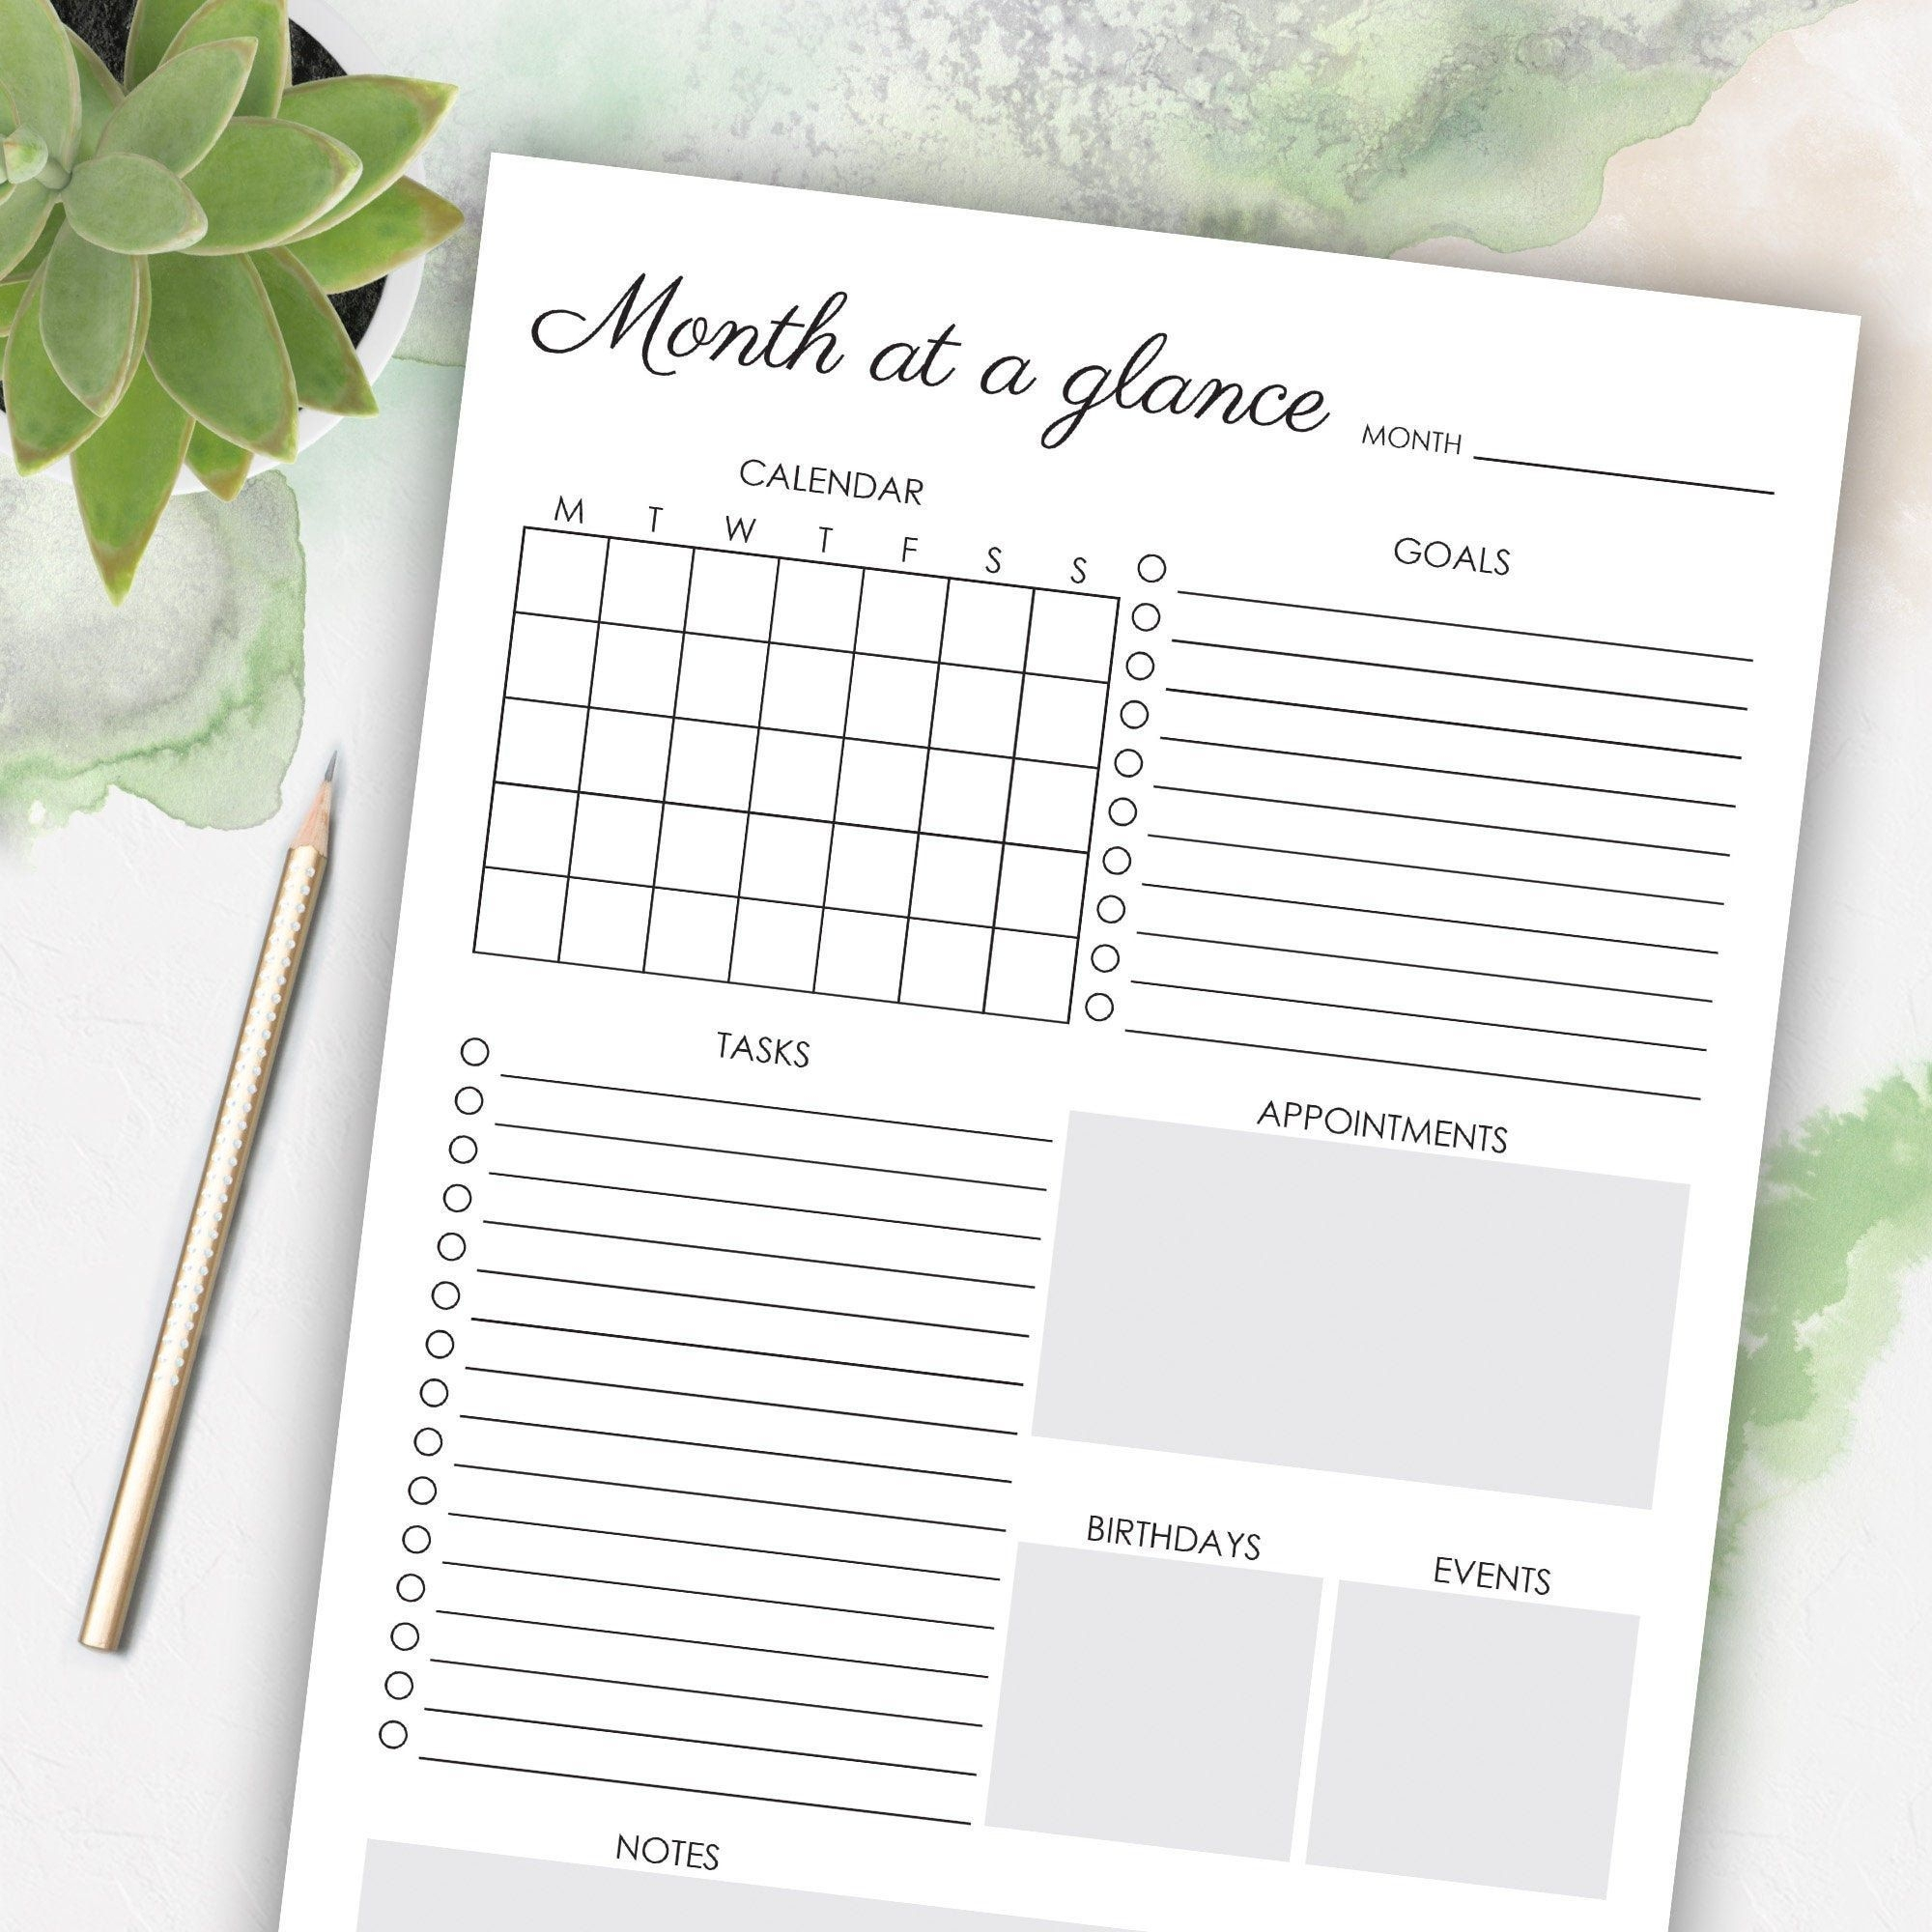 Month At A Glance Pdf - Example Calendar Printable